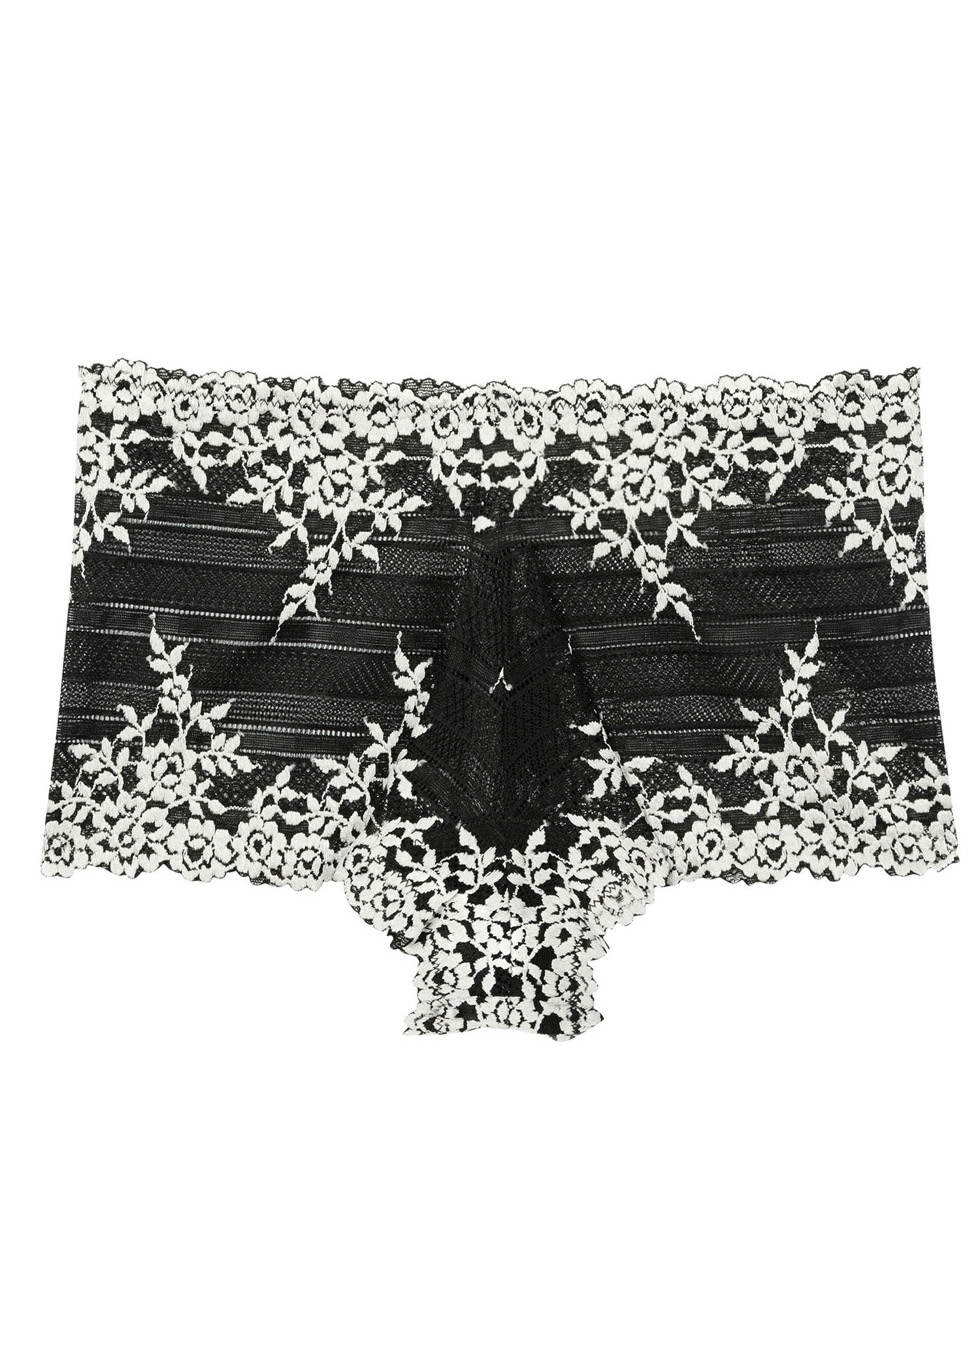 Embrace black lace briefs - Wacoal